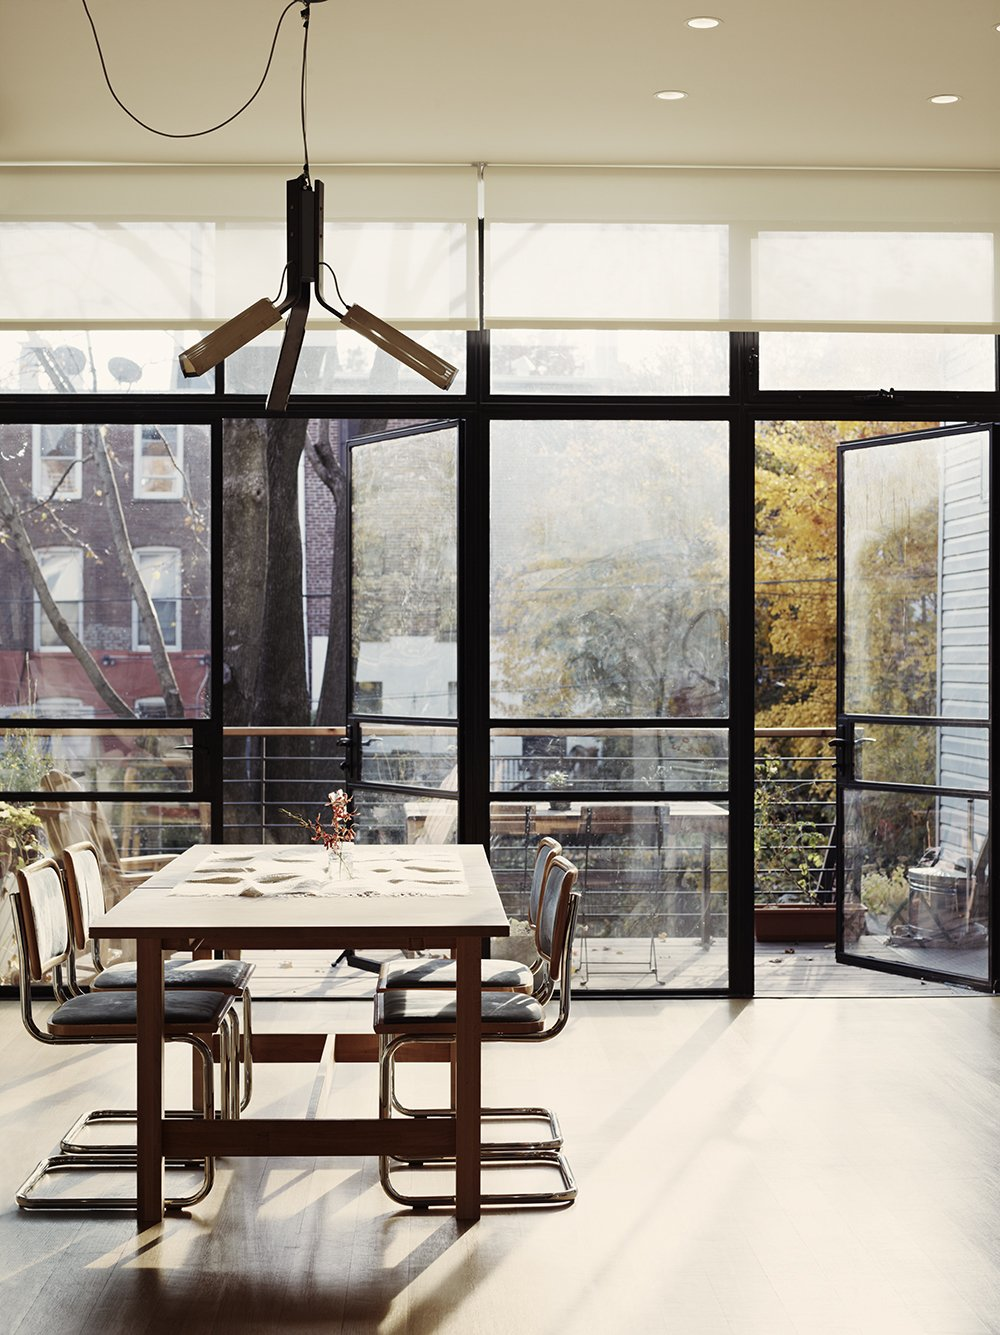 It's Back to Basics for This 1901 Brooklyn Town House